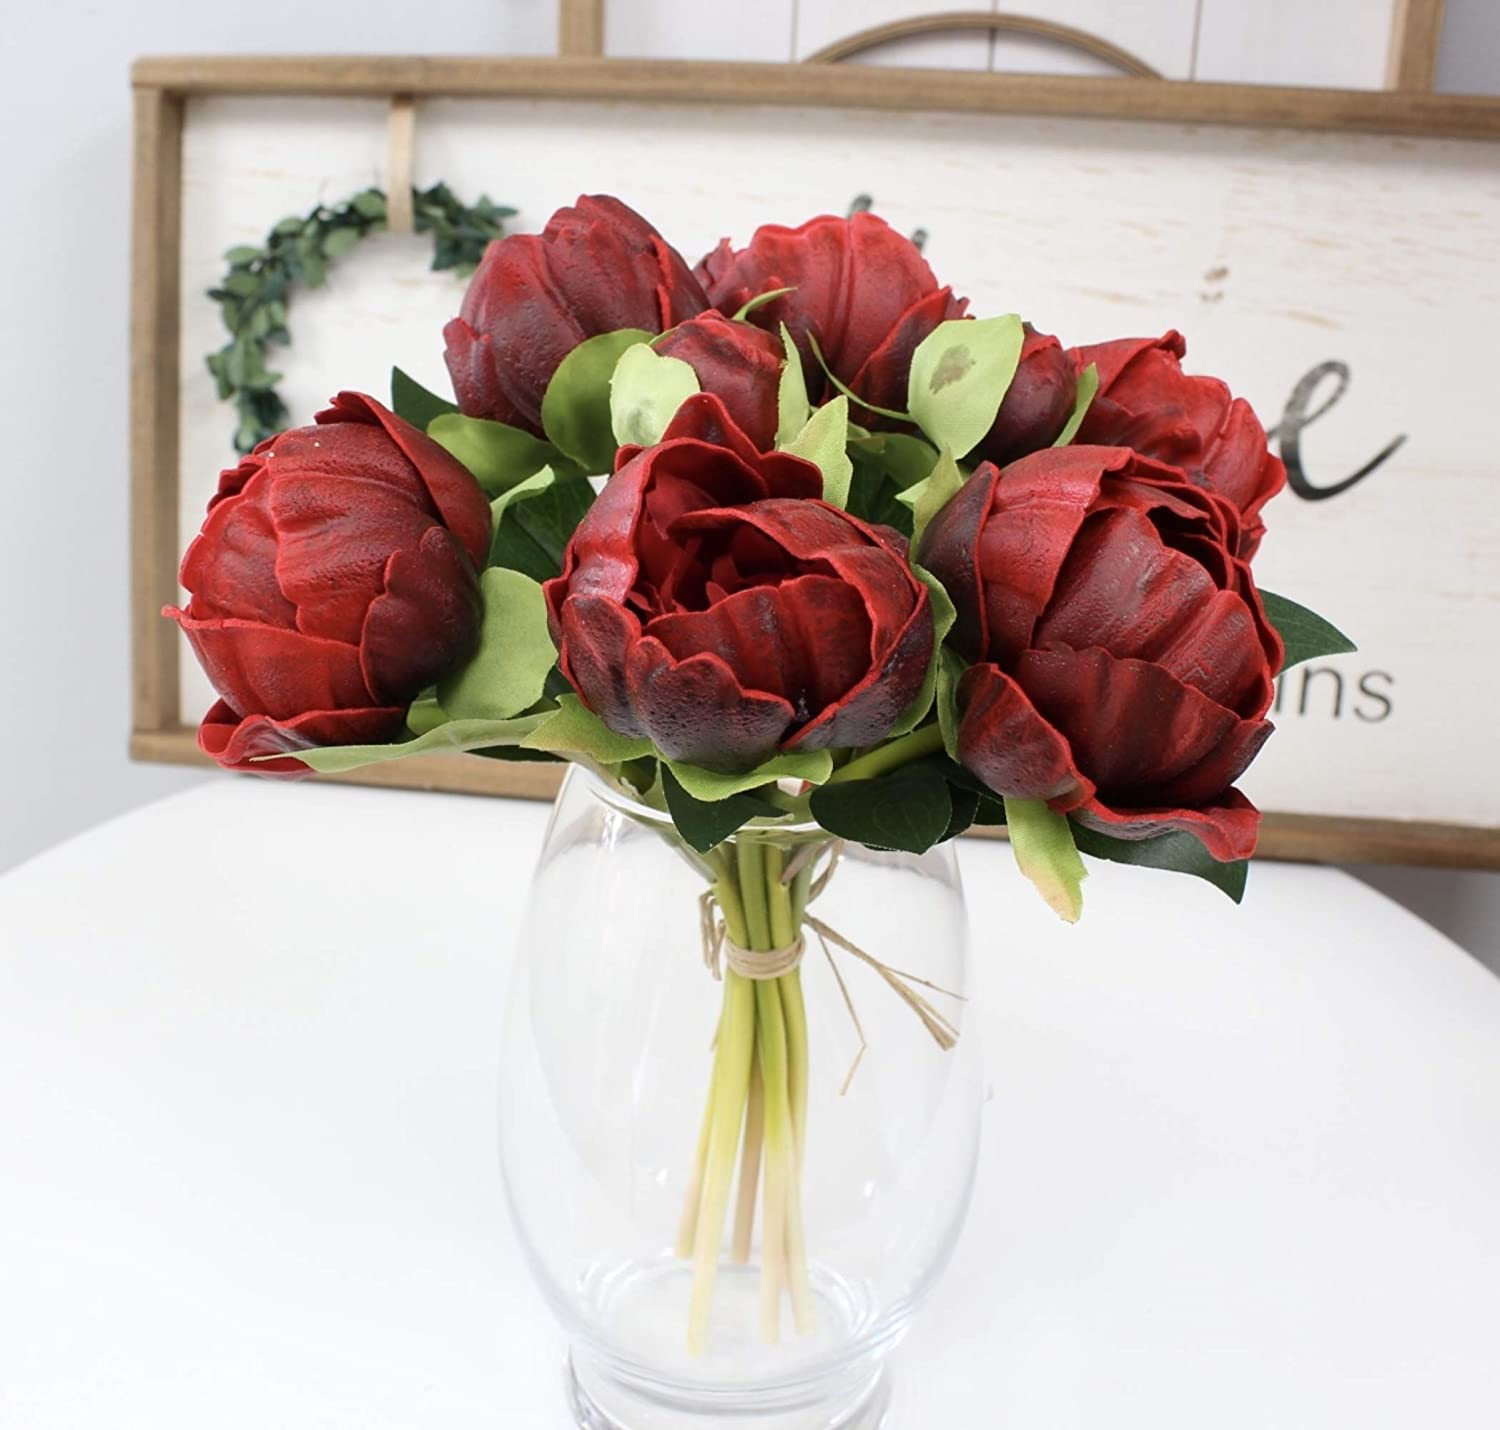 Angel Isabella, LLC Real Touch Peony Bouquet - 6 Blooms 2buds PU Life-Like Realistic Touch Artificial Flowers for Decor, Wedding, Crafts (Apple Red)